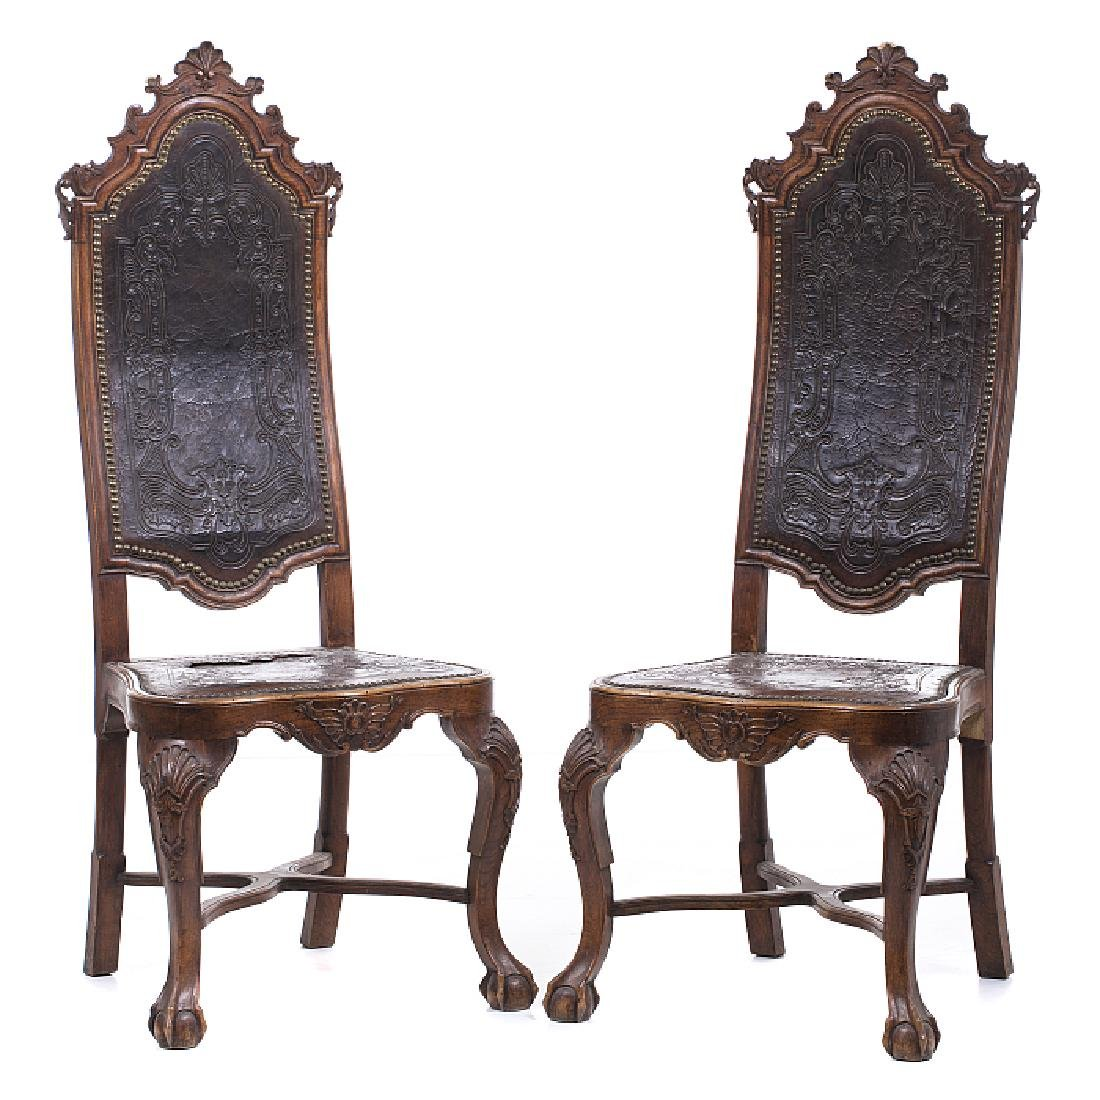 Pair of hide chairs with pierced mounts